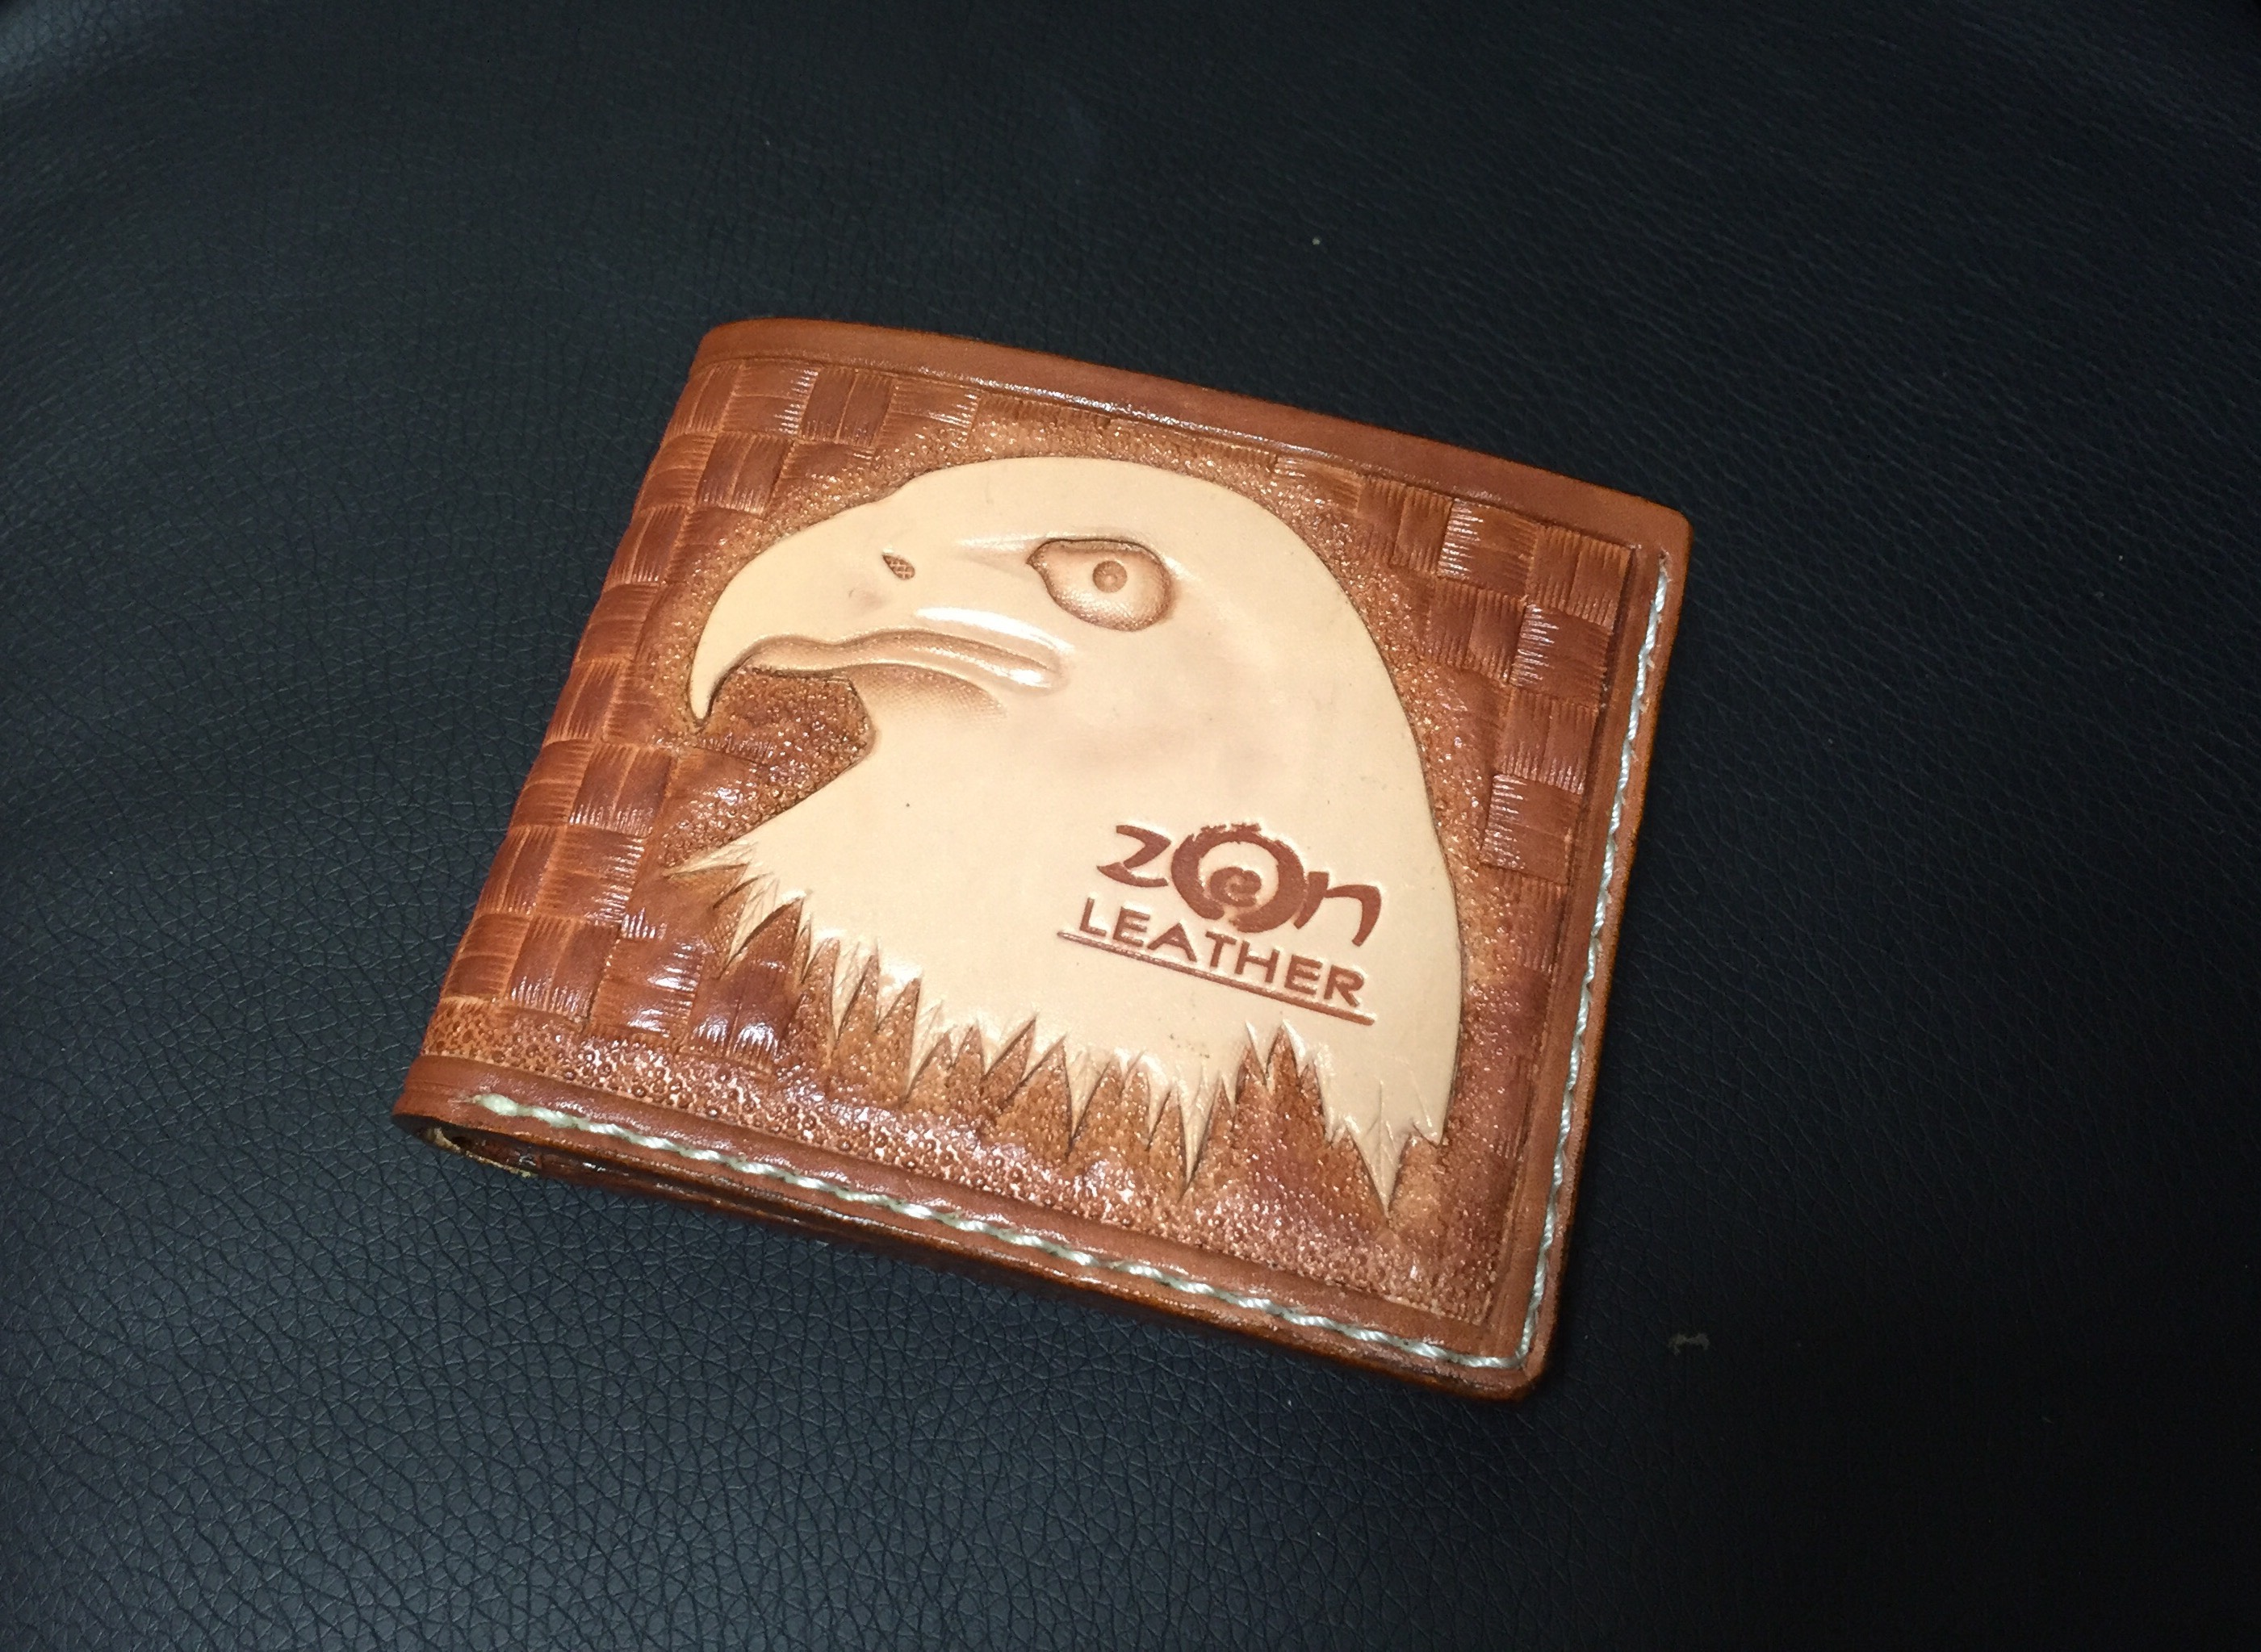 Carved leather wallet